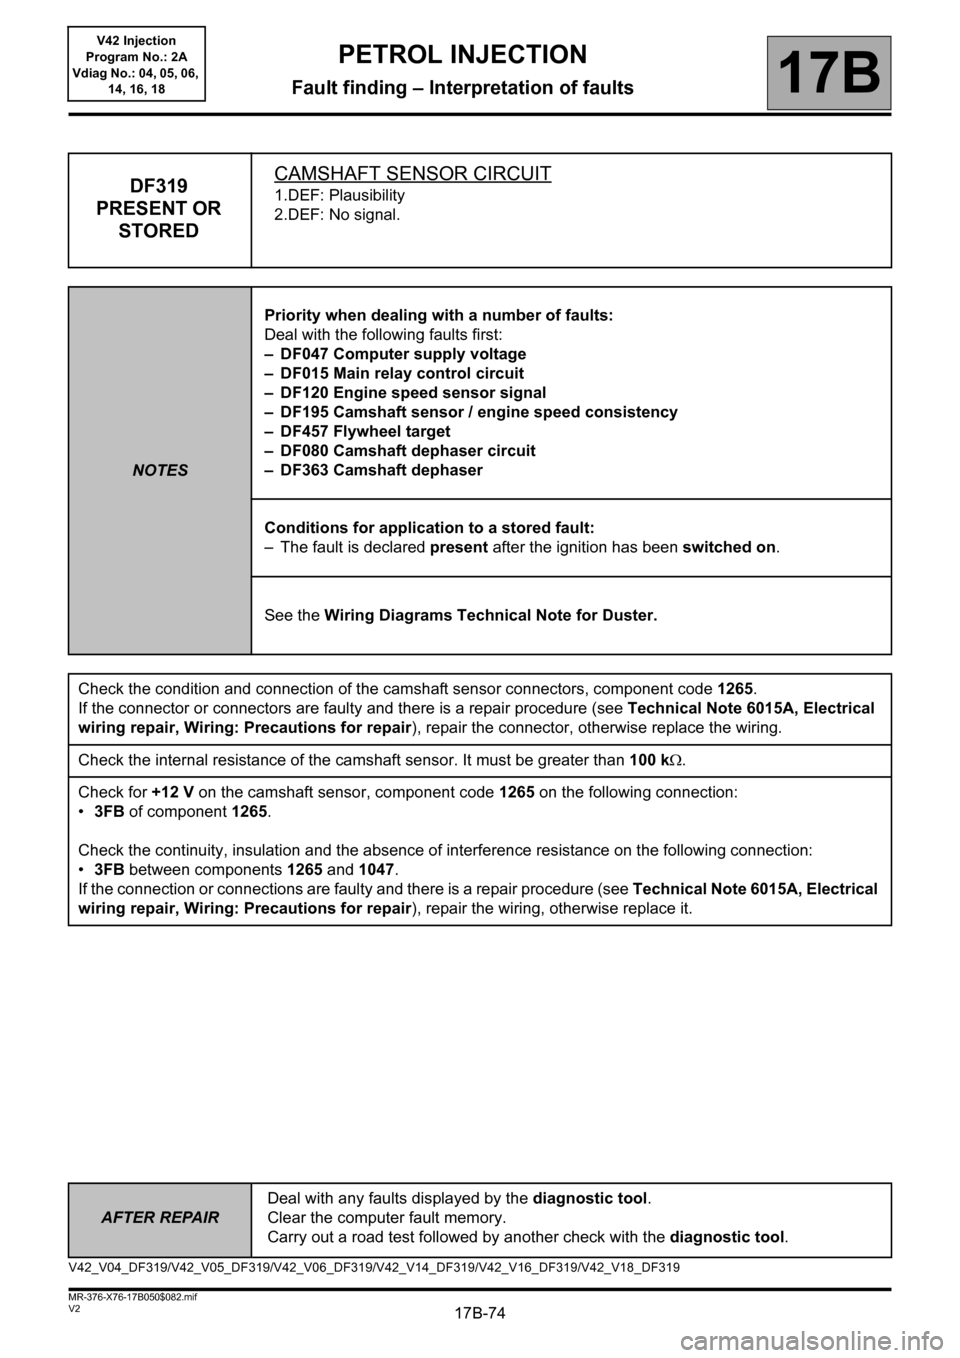 RENAULT KANGOO 2013 X61 / 2.G Petrol V42 Injection Workshop Manual, Page 74